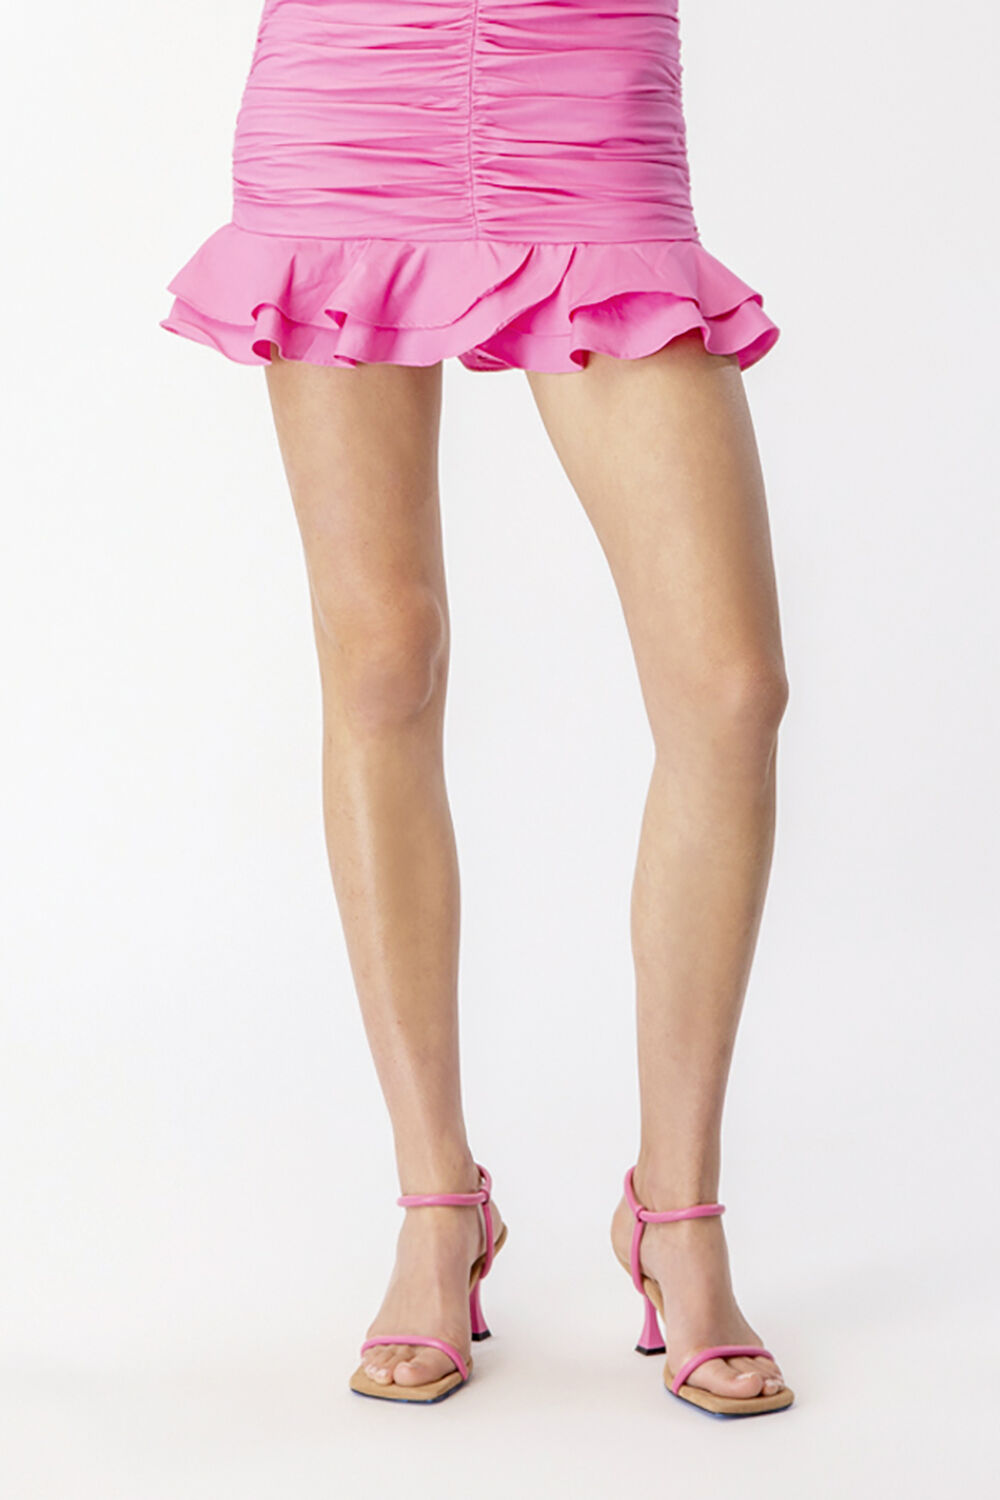 MILA STRAPPY HEEL in colour PARADISE PINK